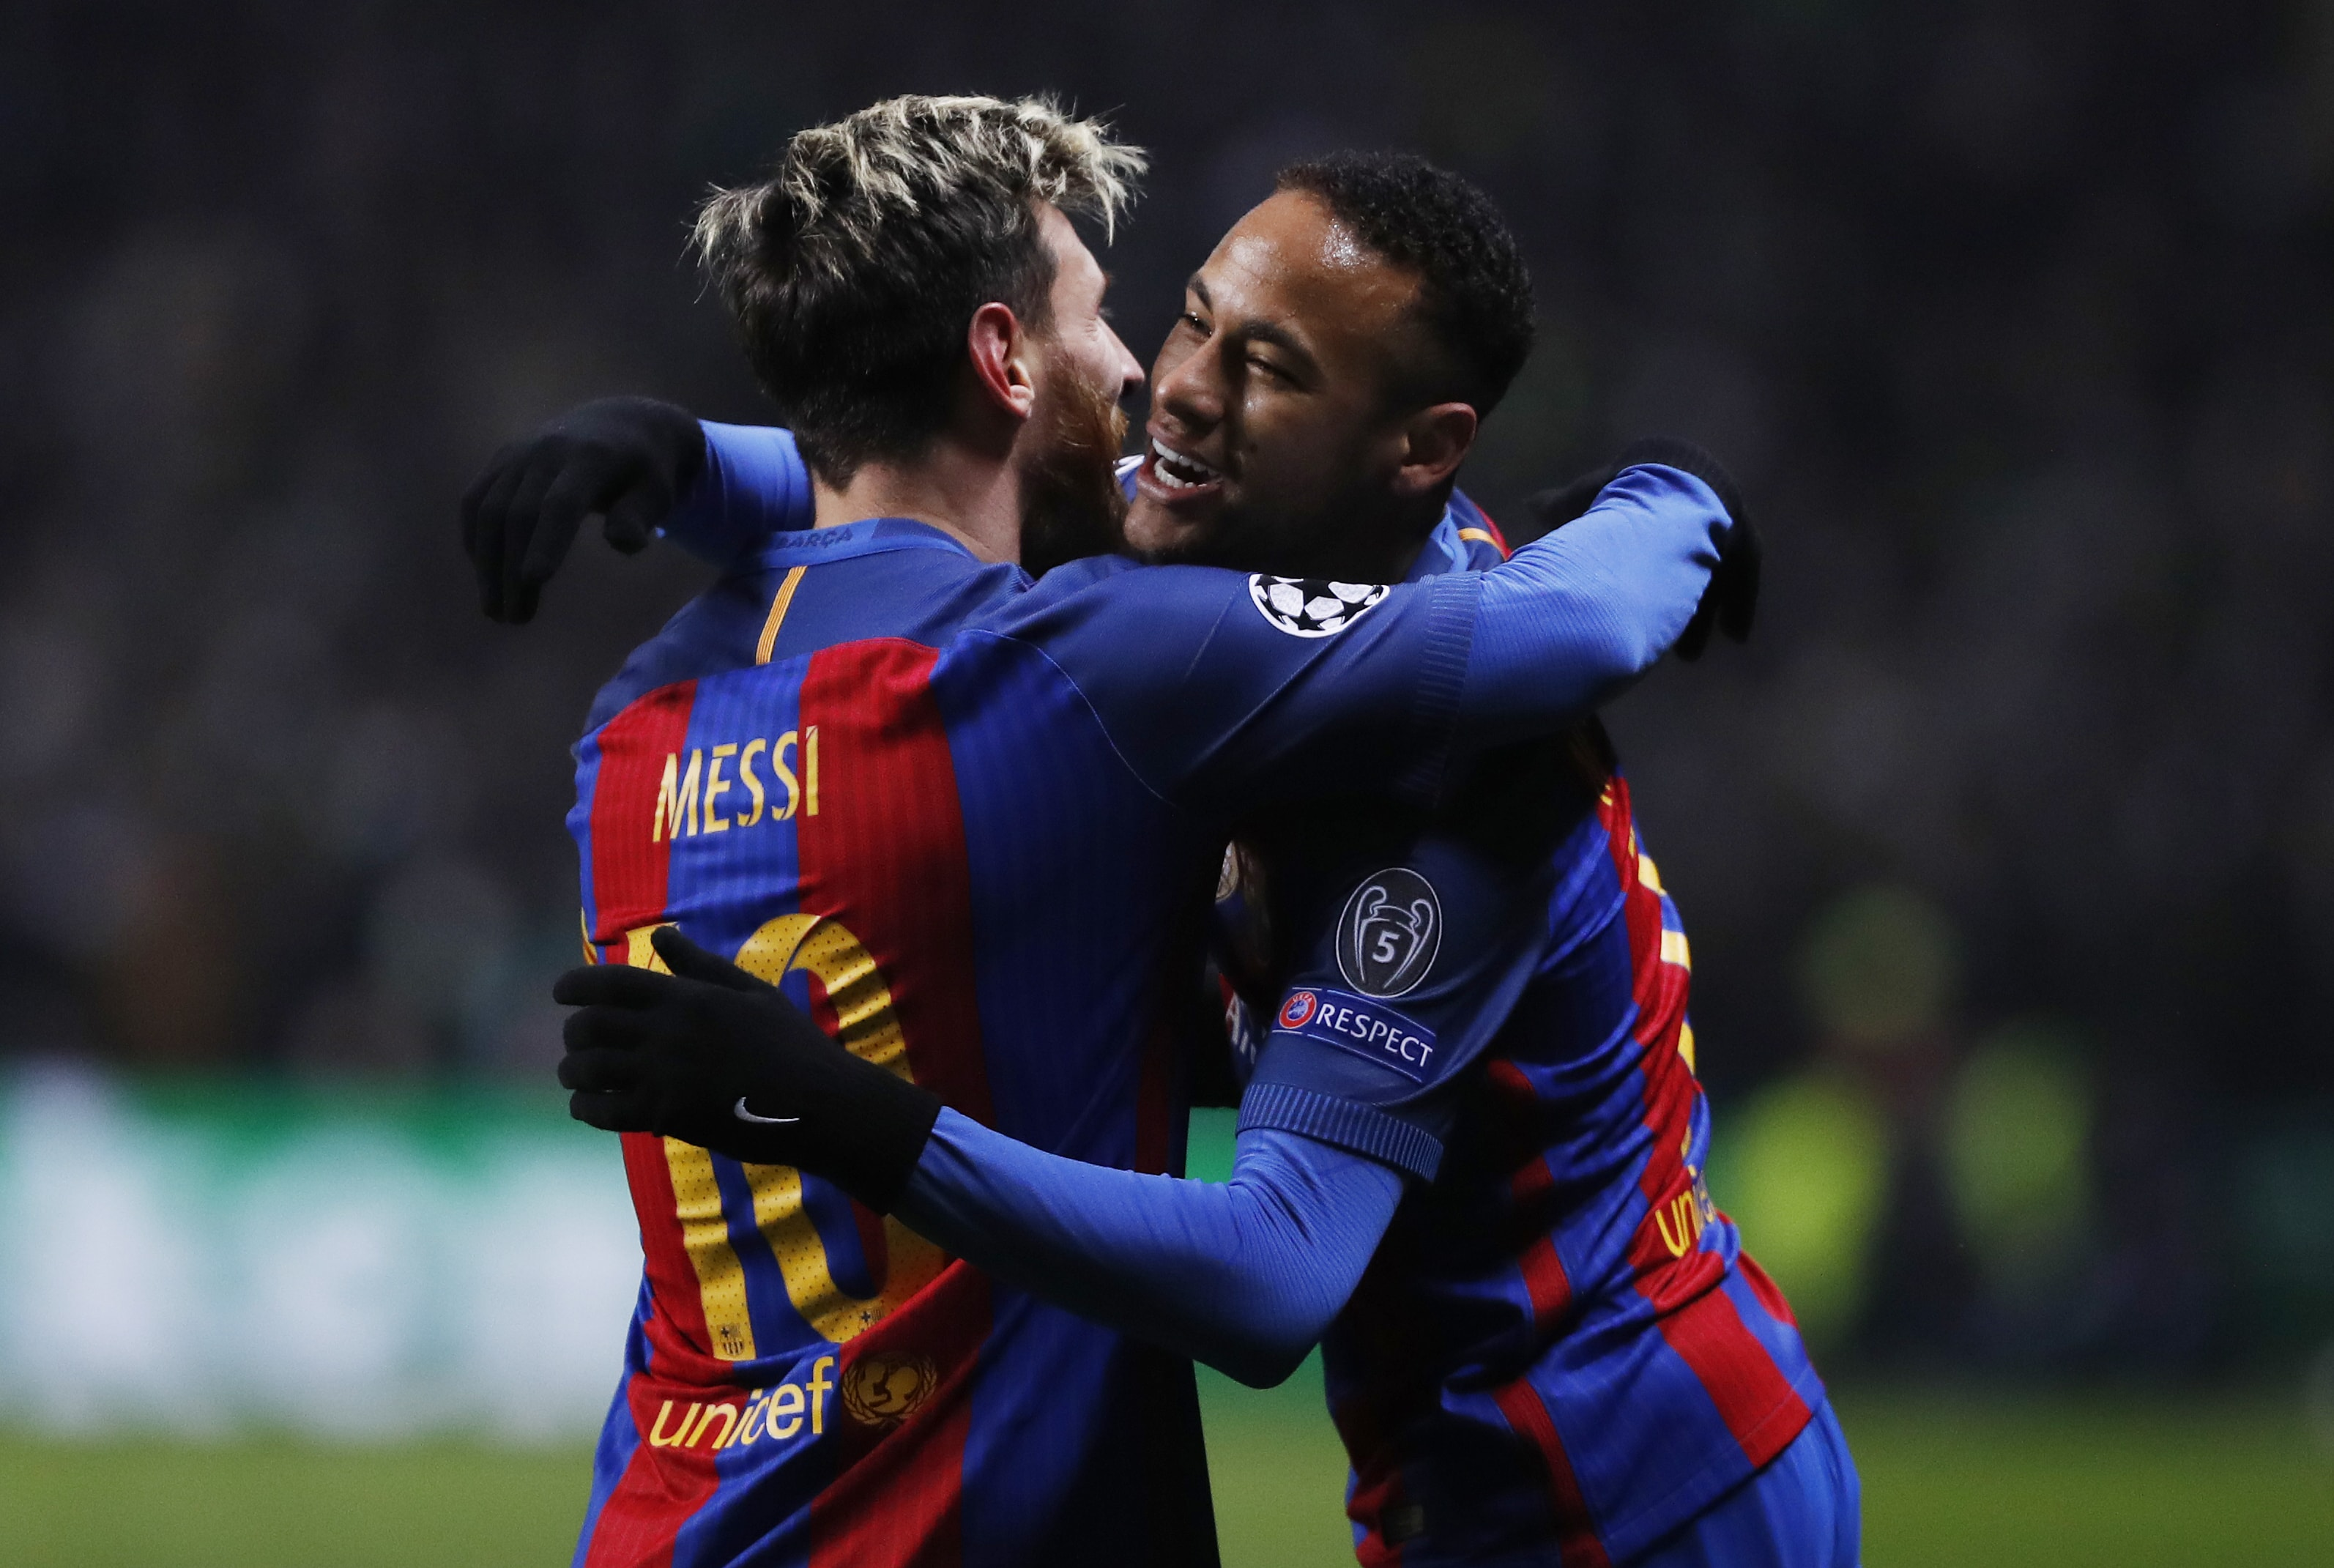 Barcelona superstar Lionel Messi feared Neymar would join rivals Real Madrid